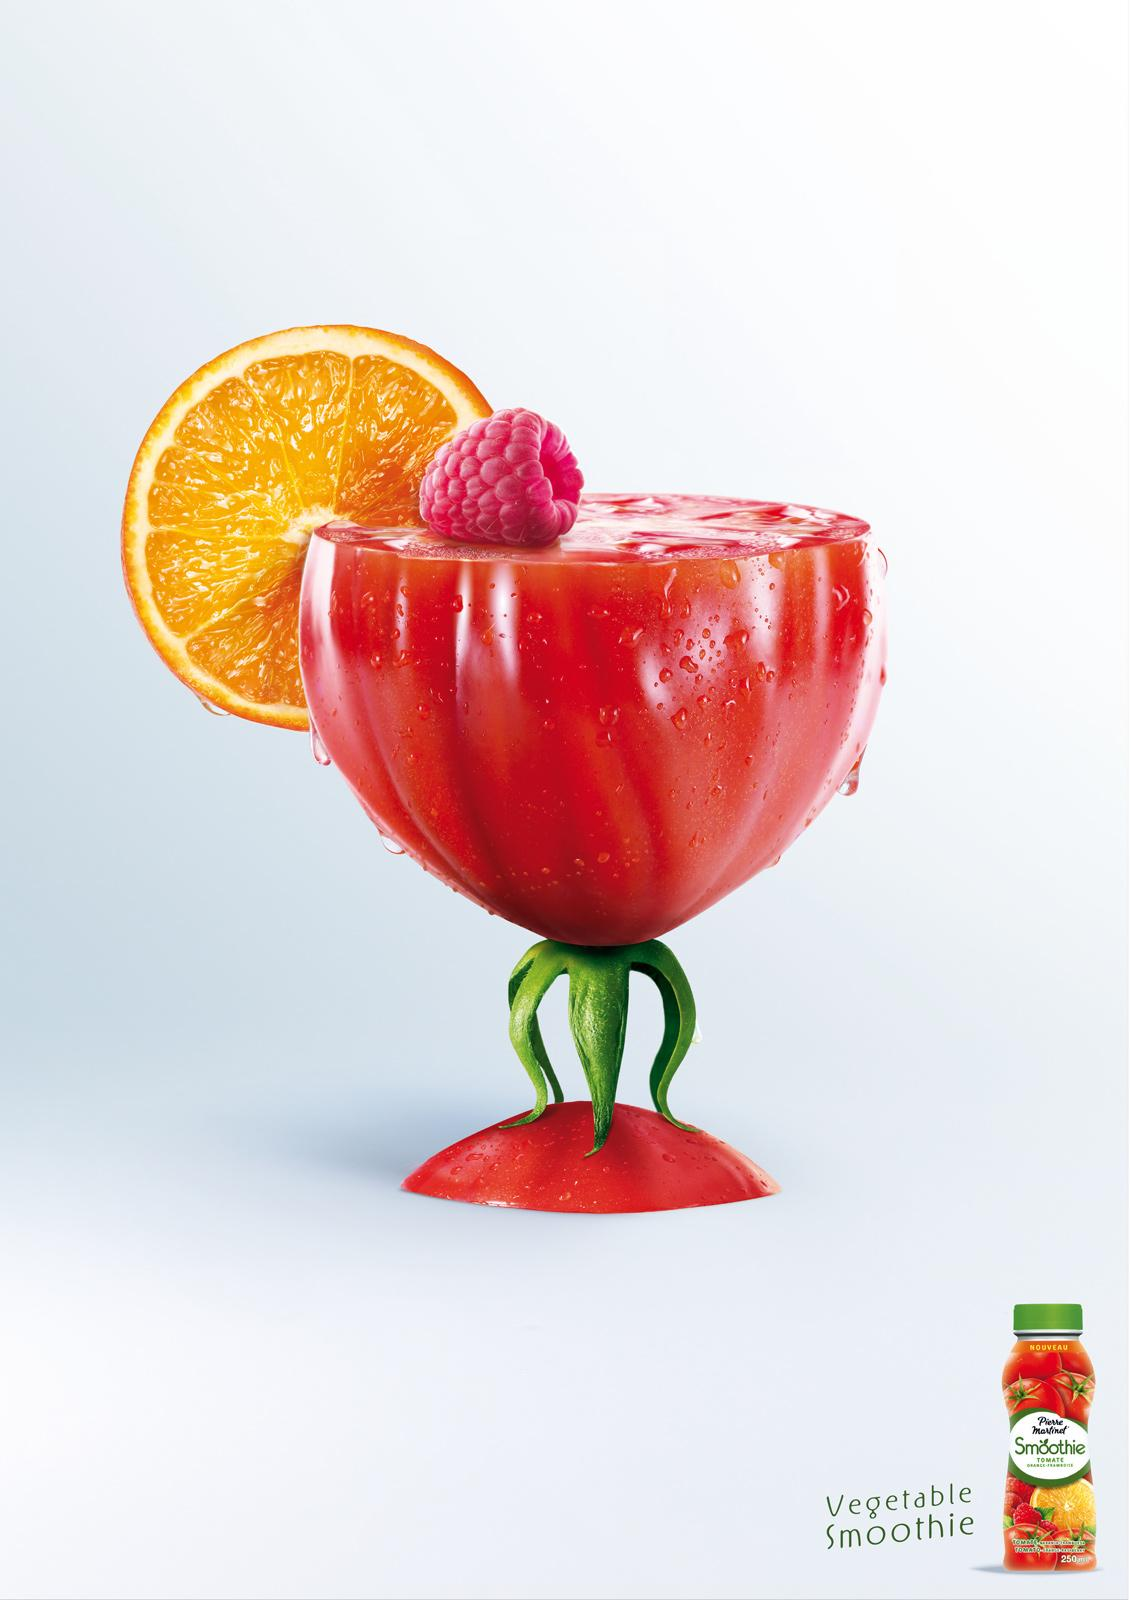 Pierre Martinet Print Ad -  Vegetable smoothie, Tomato